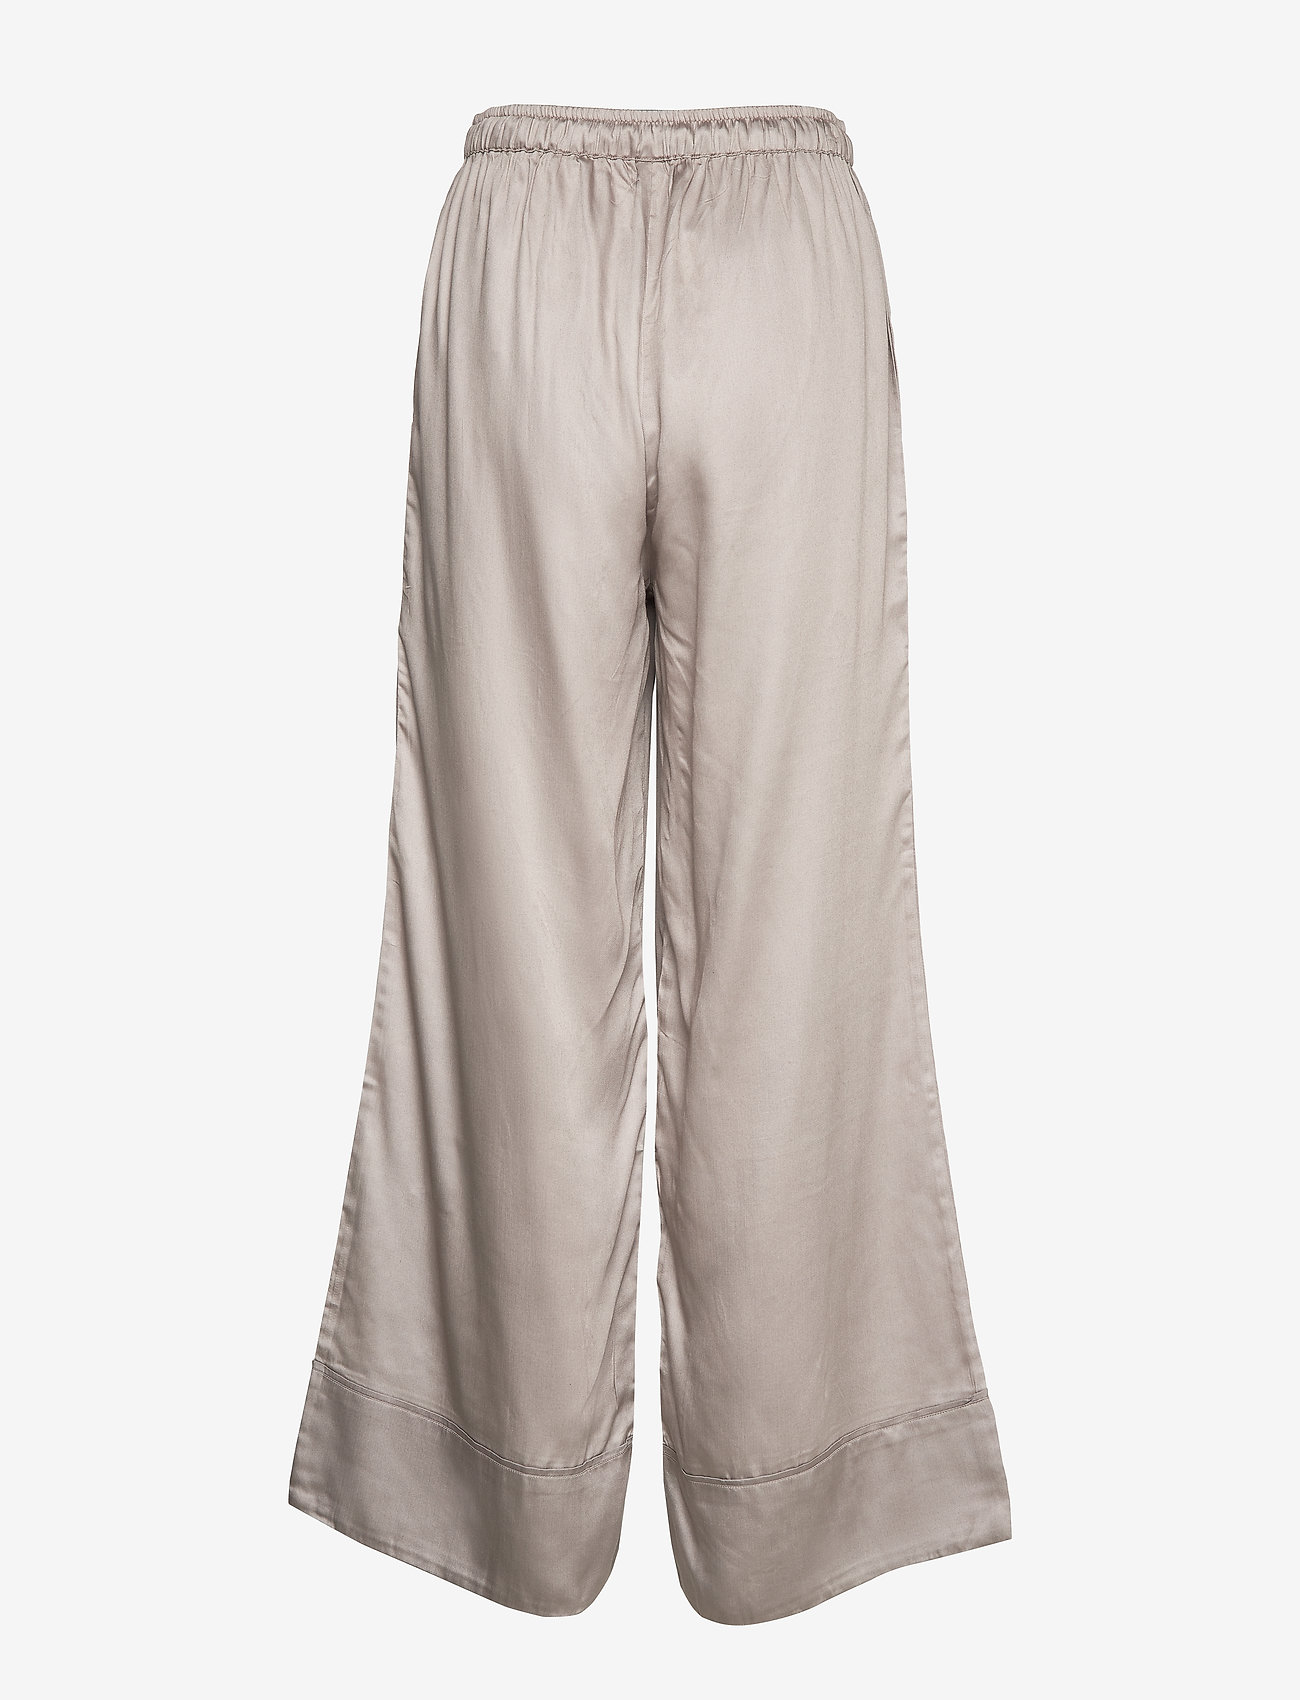 Underprotection - Rana pants - doły - grey - 1